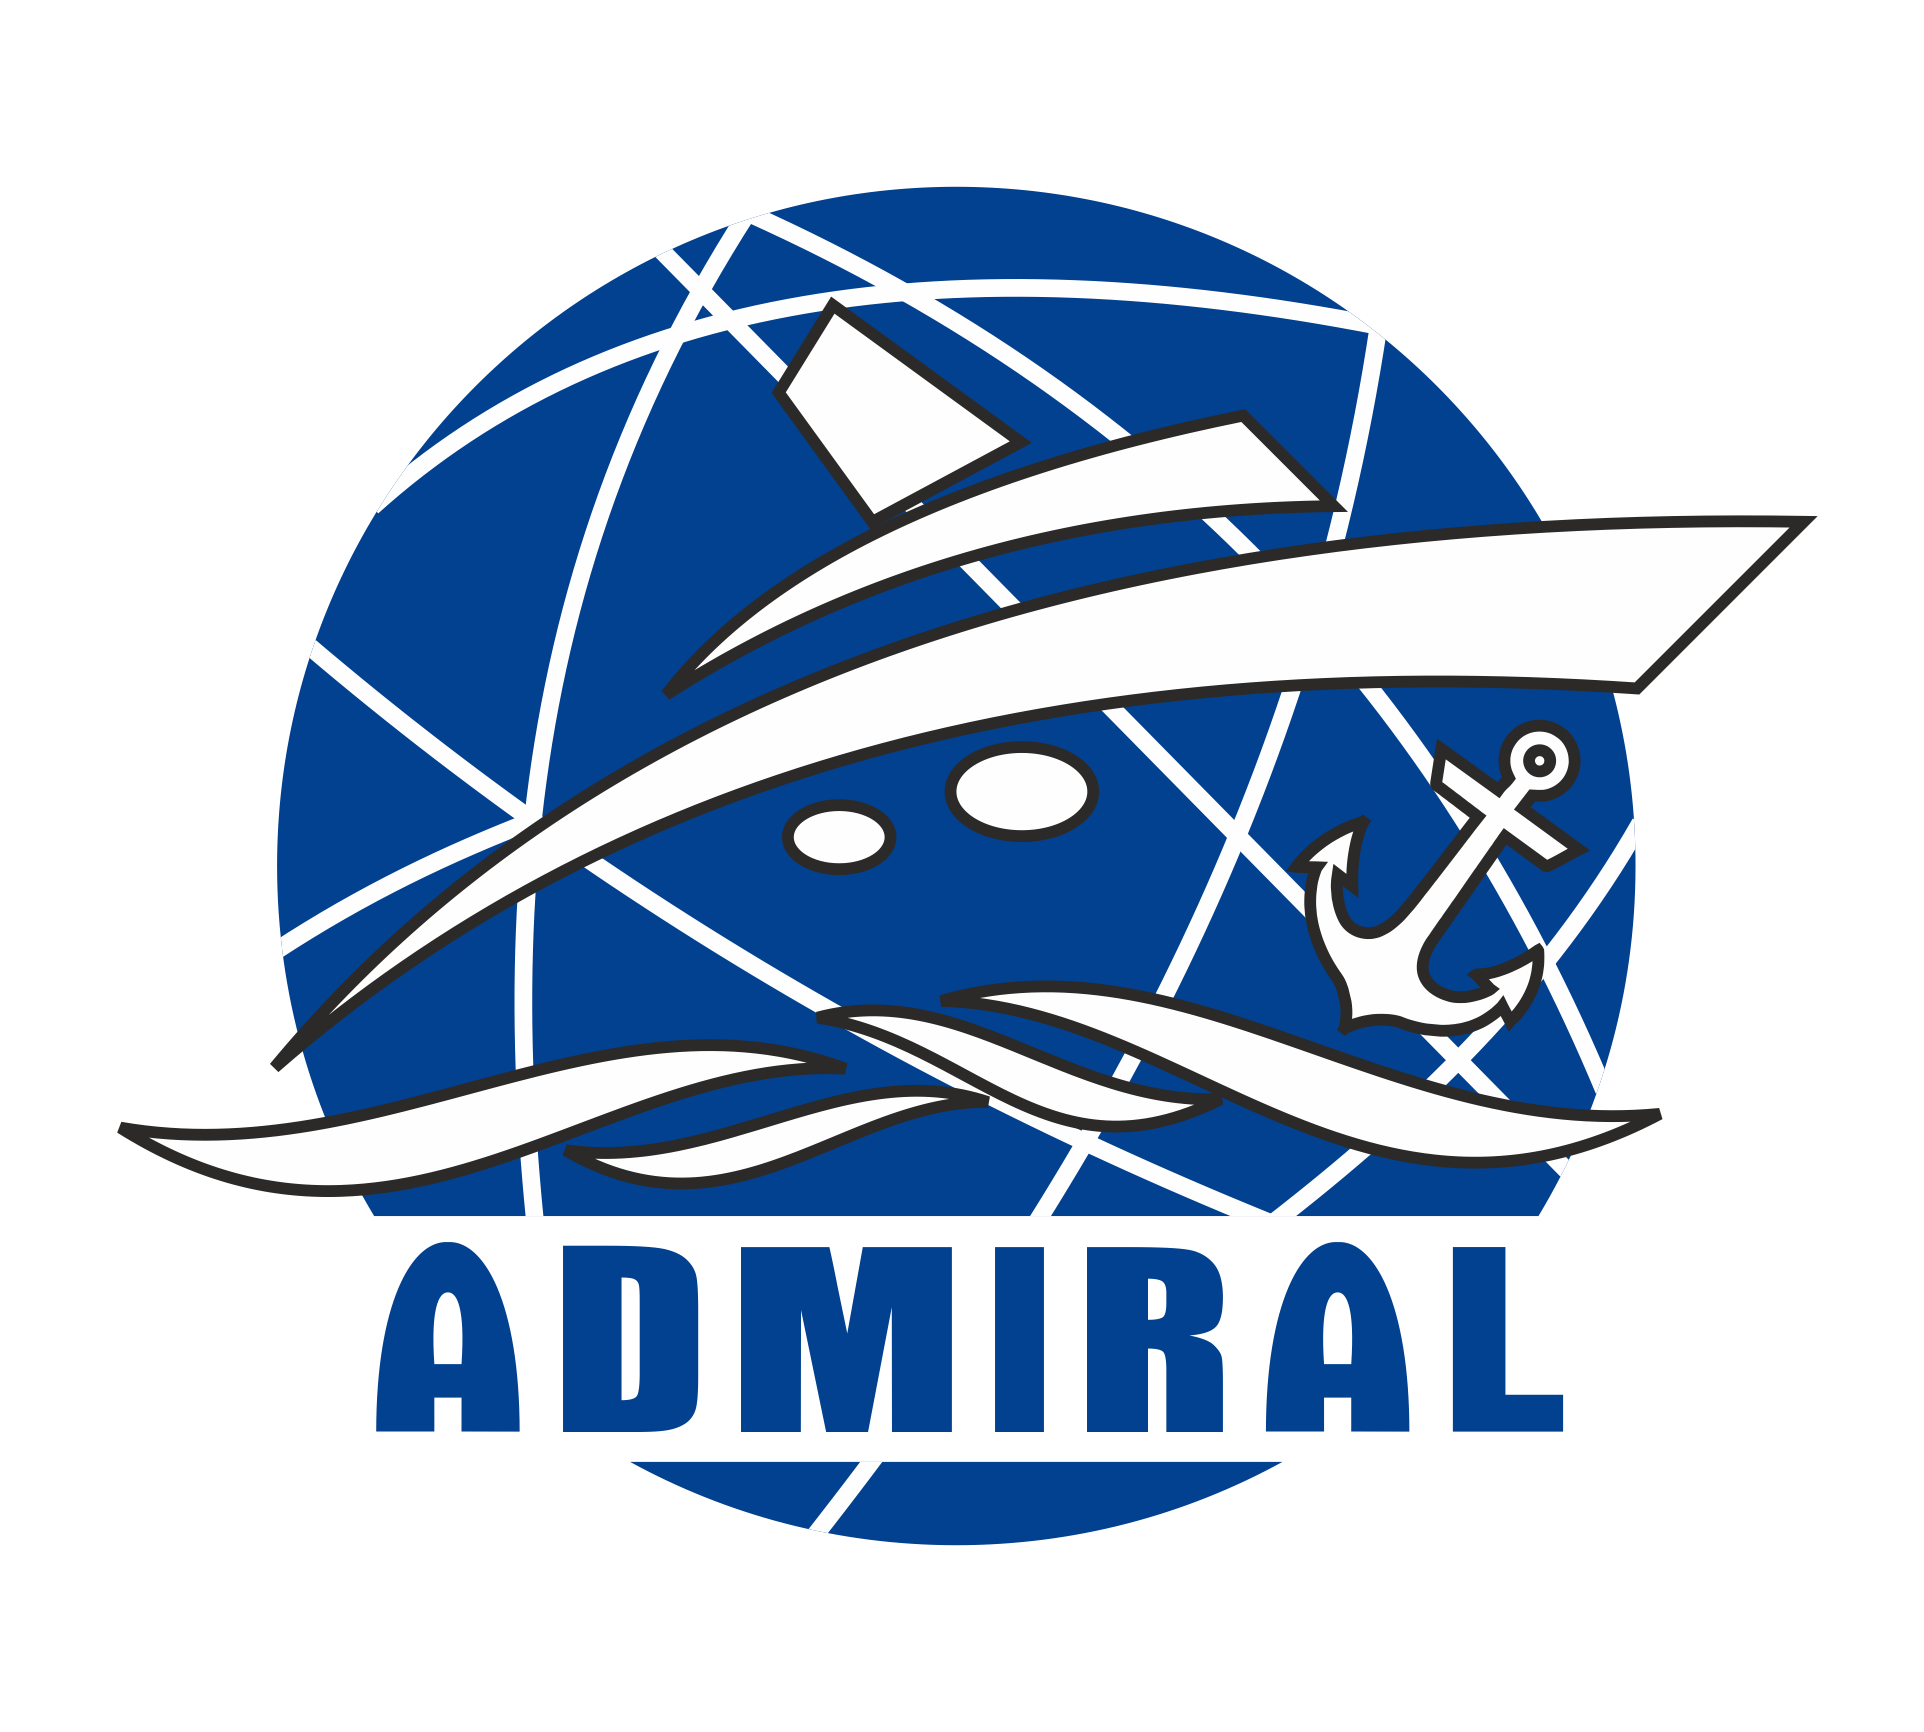 Admiral shipping